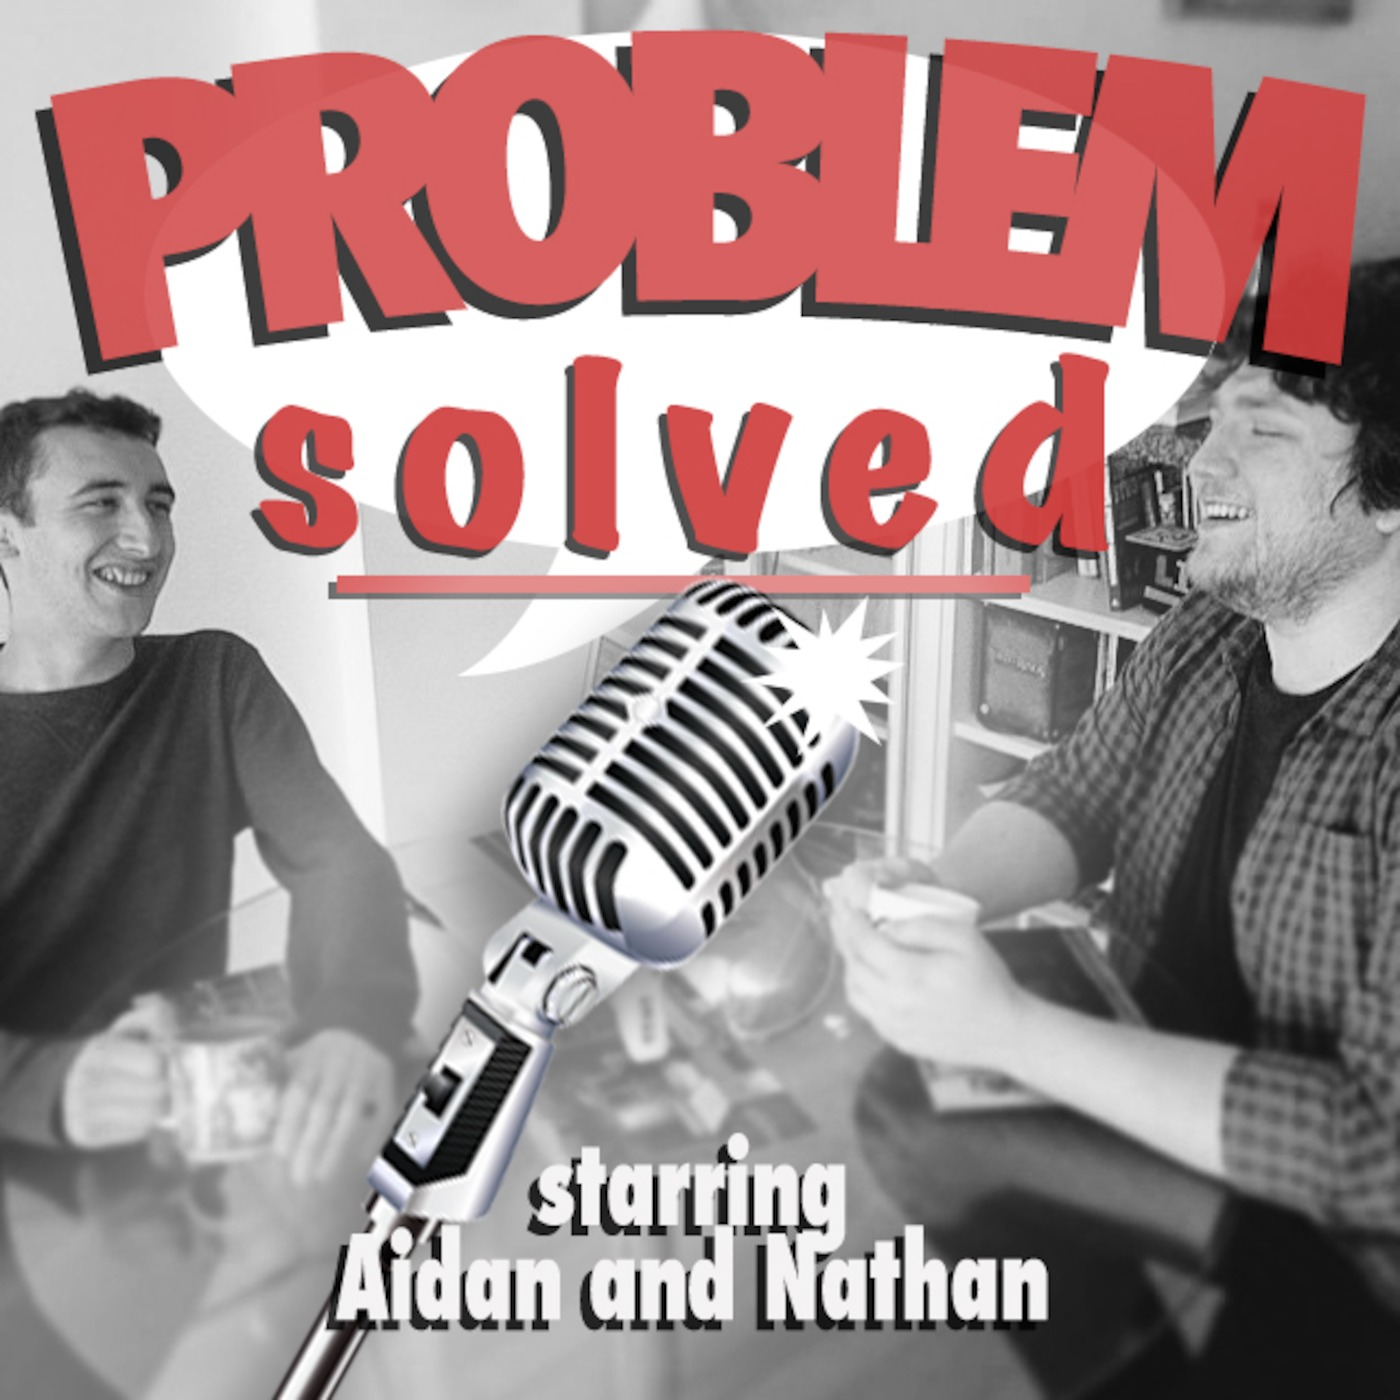 Problem Solved. With Aidan & Nathan